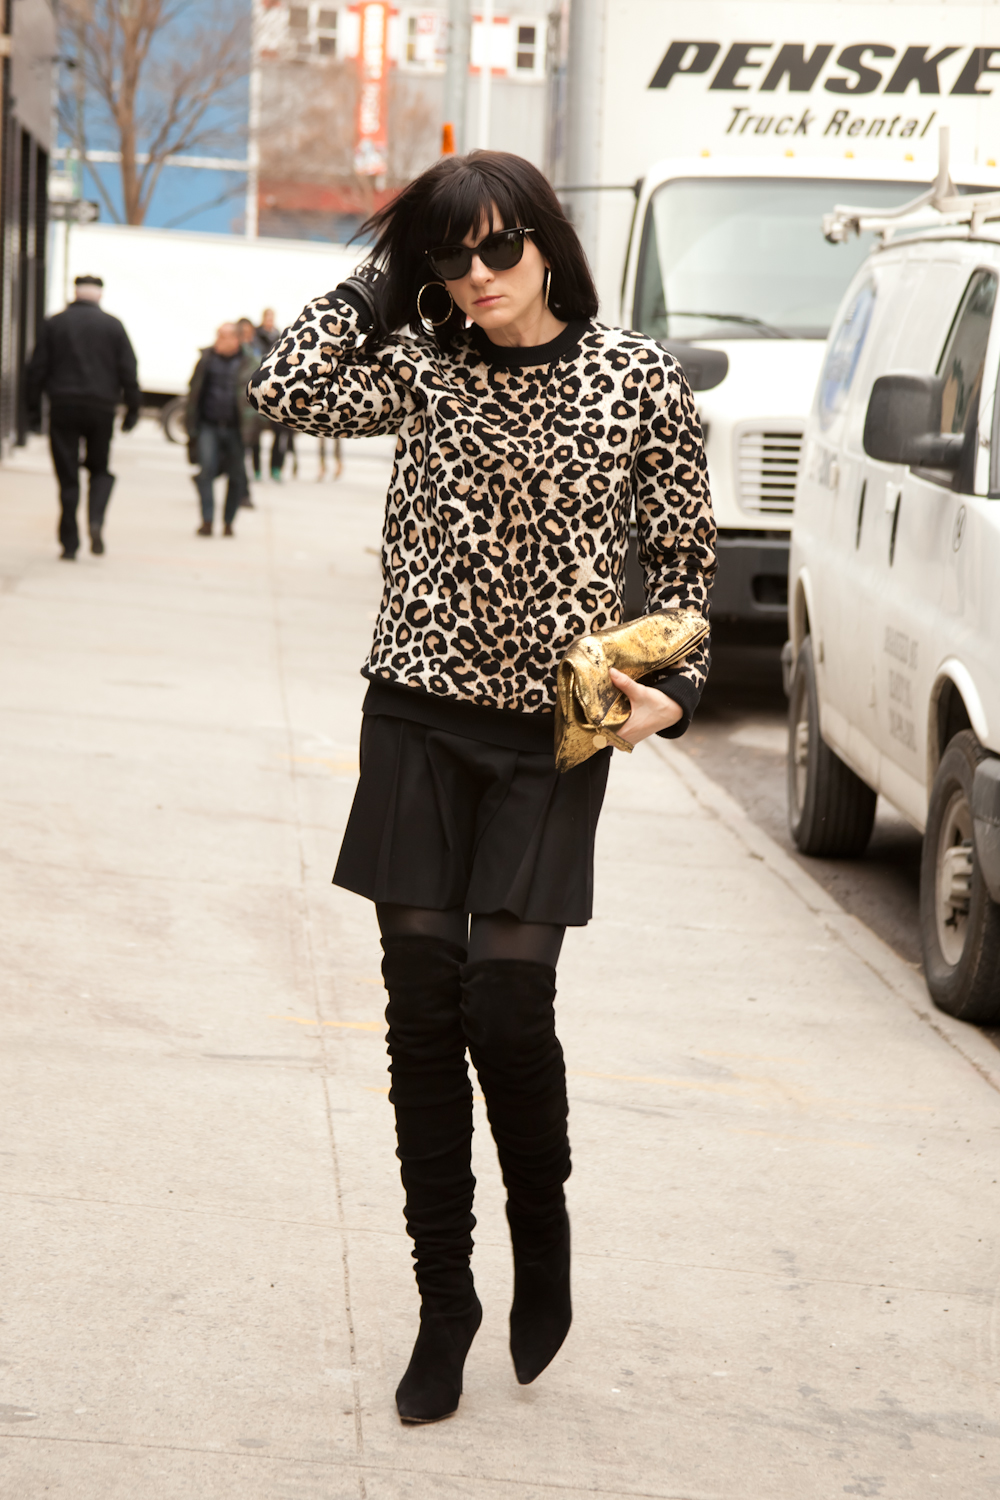 Leopard Print is Always In